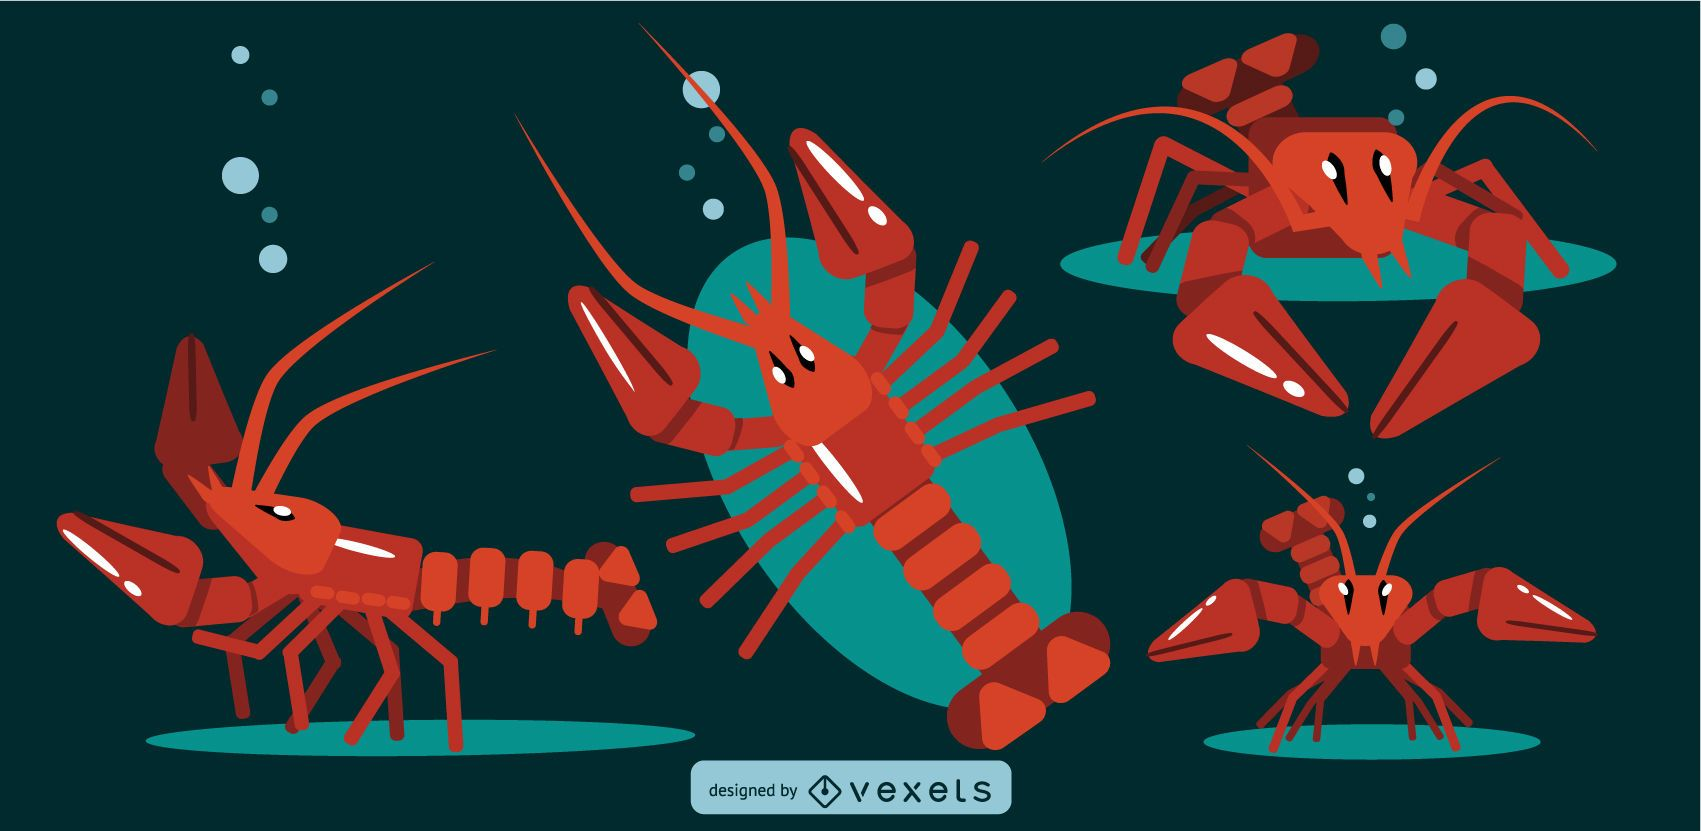 Lobster Rounded Flat Geometric Design